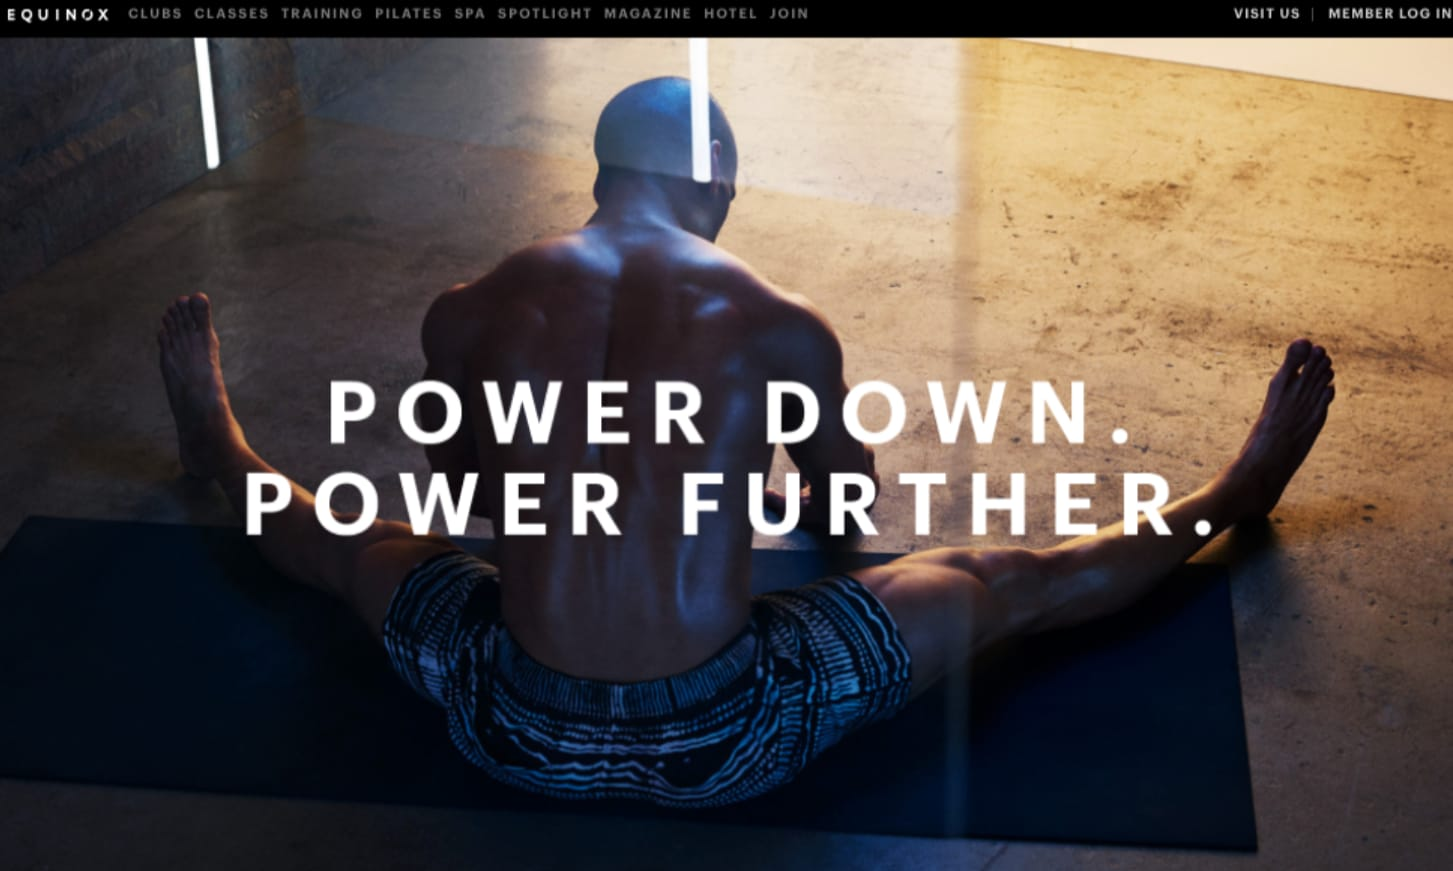 Equinox: Power Down. Power Further.